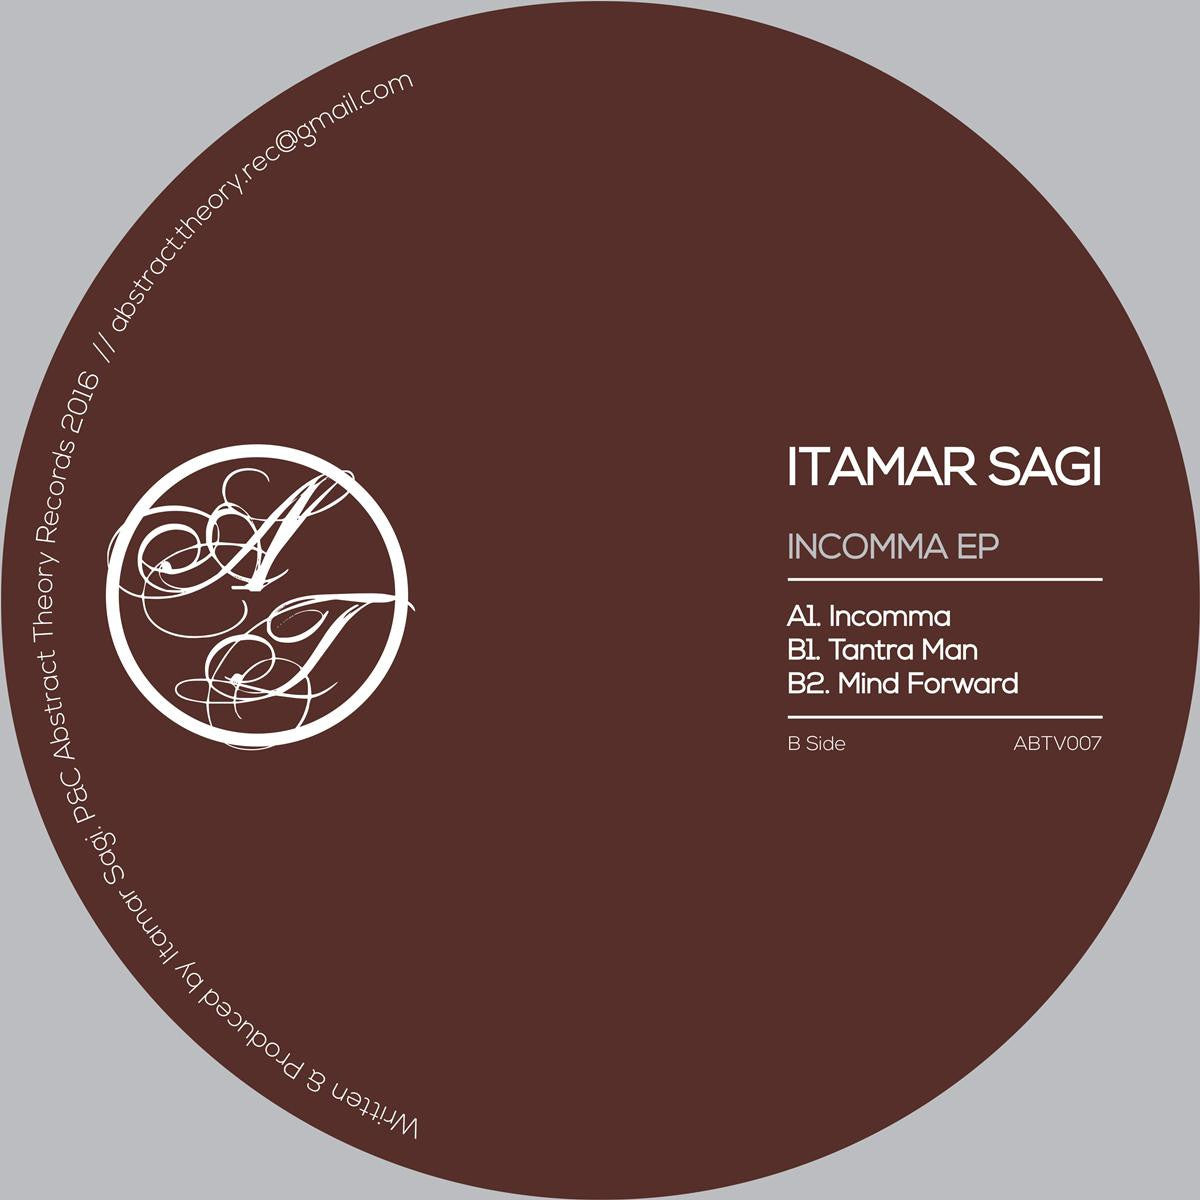 Itamar Sagi - Incomma , Vinyl - Abstract Theory, Unearthed Sounds